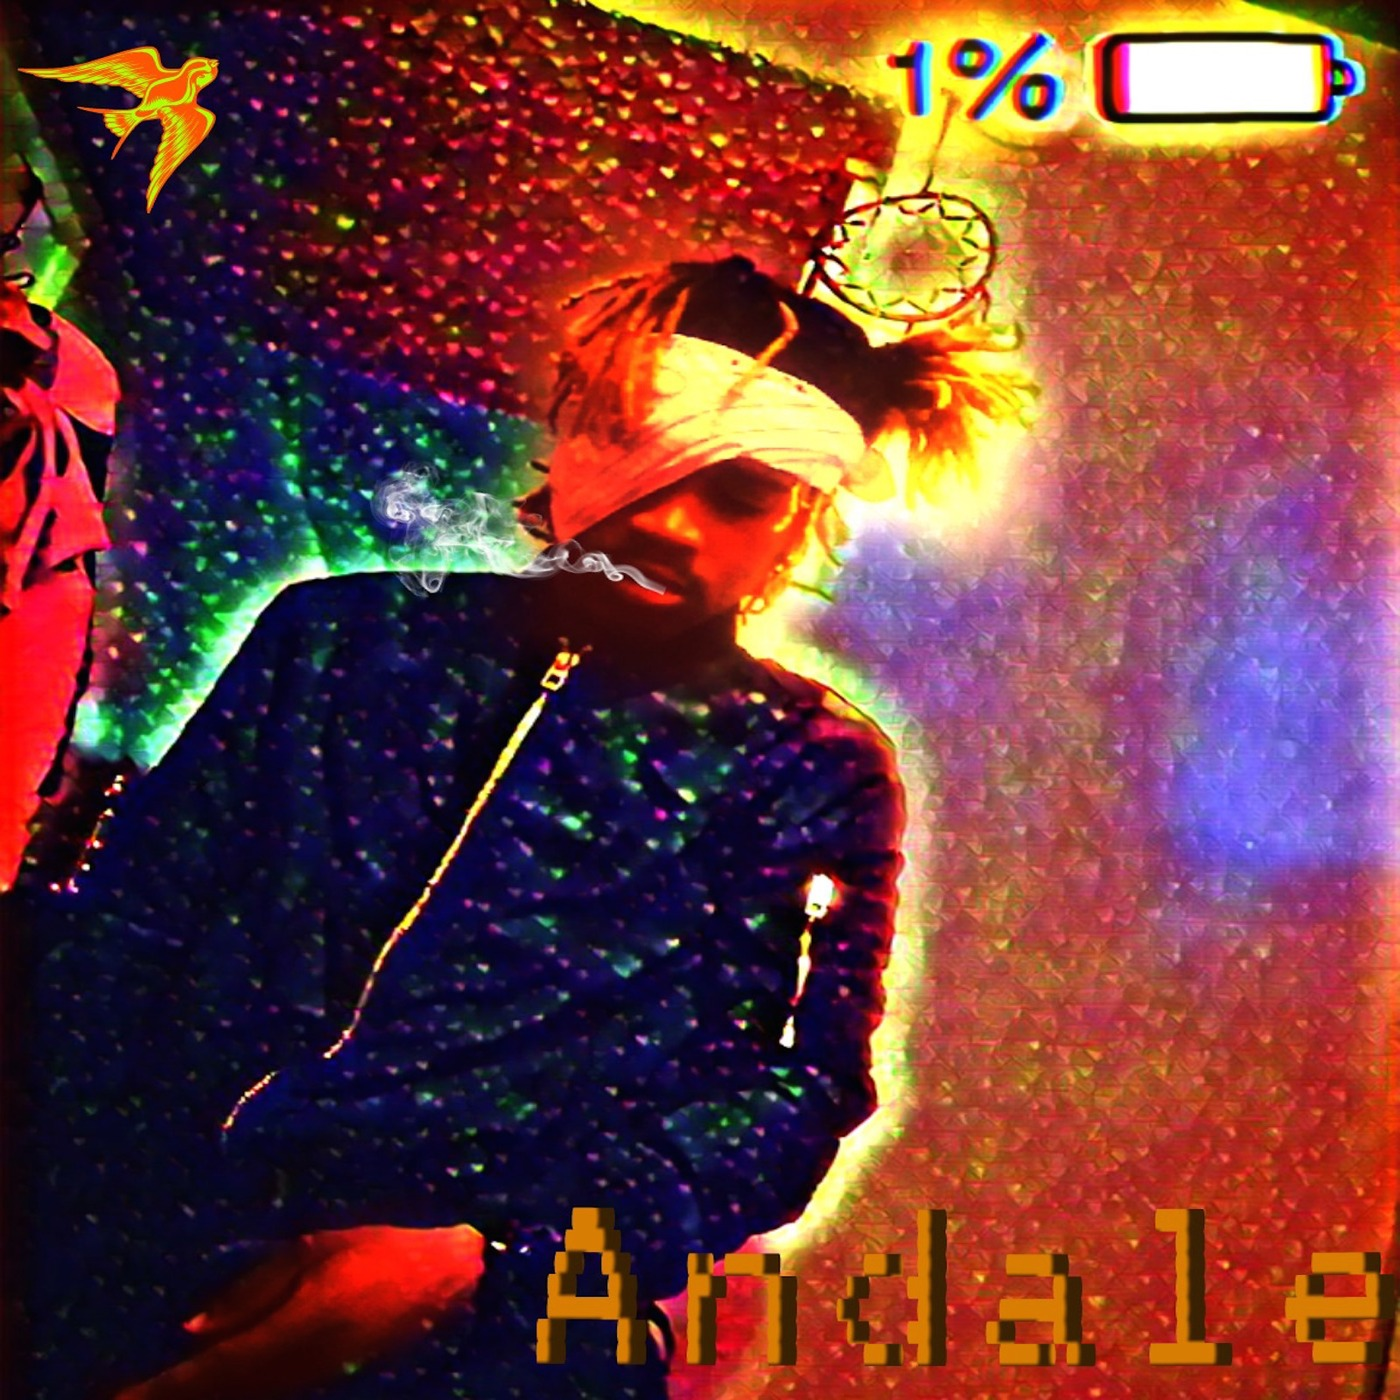 andale hispanic singles We have lots more single men in andale, kansas, join now and start chatting with one of our single guys now we have christian men, republican guys, democrat men, guys with blue eyes, and everything else find black men, white men, latino males, and asian men in andale ks.